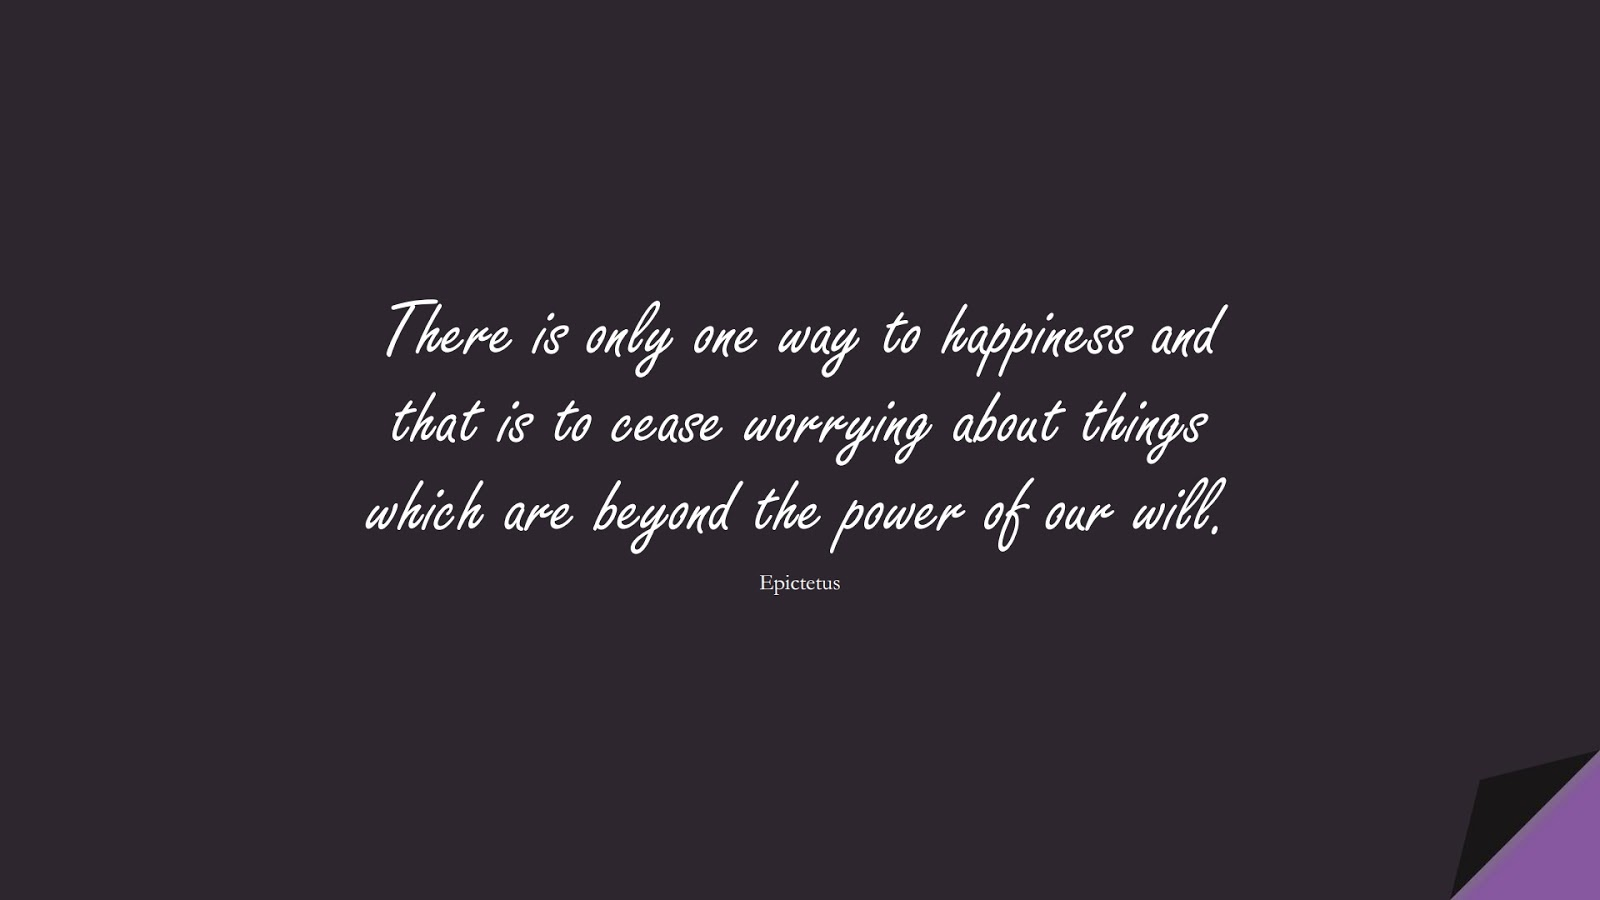 There is only one way to happiness and that is to cease worrying about things which are beyond the power of our will. (Epictetus);  #AnxietyQuotes